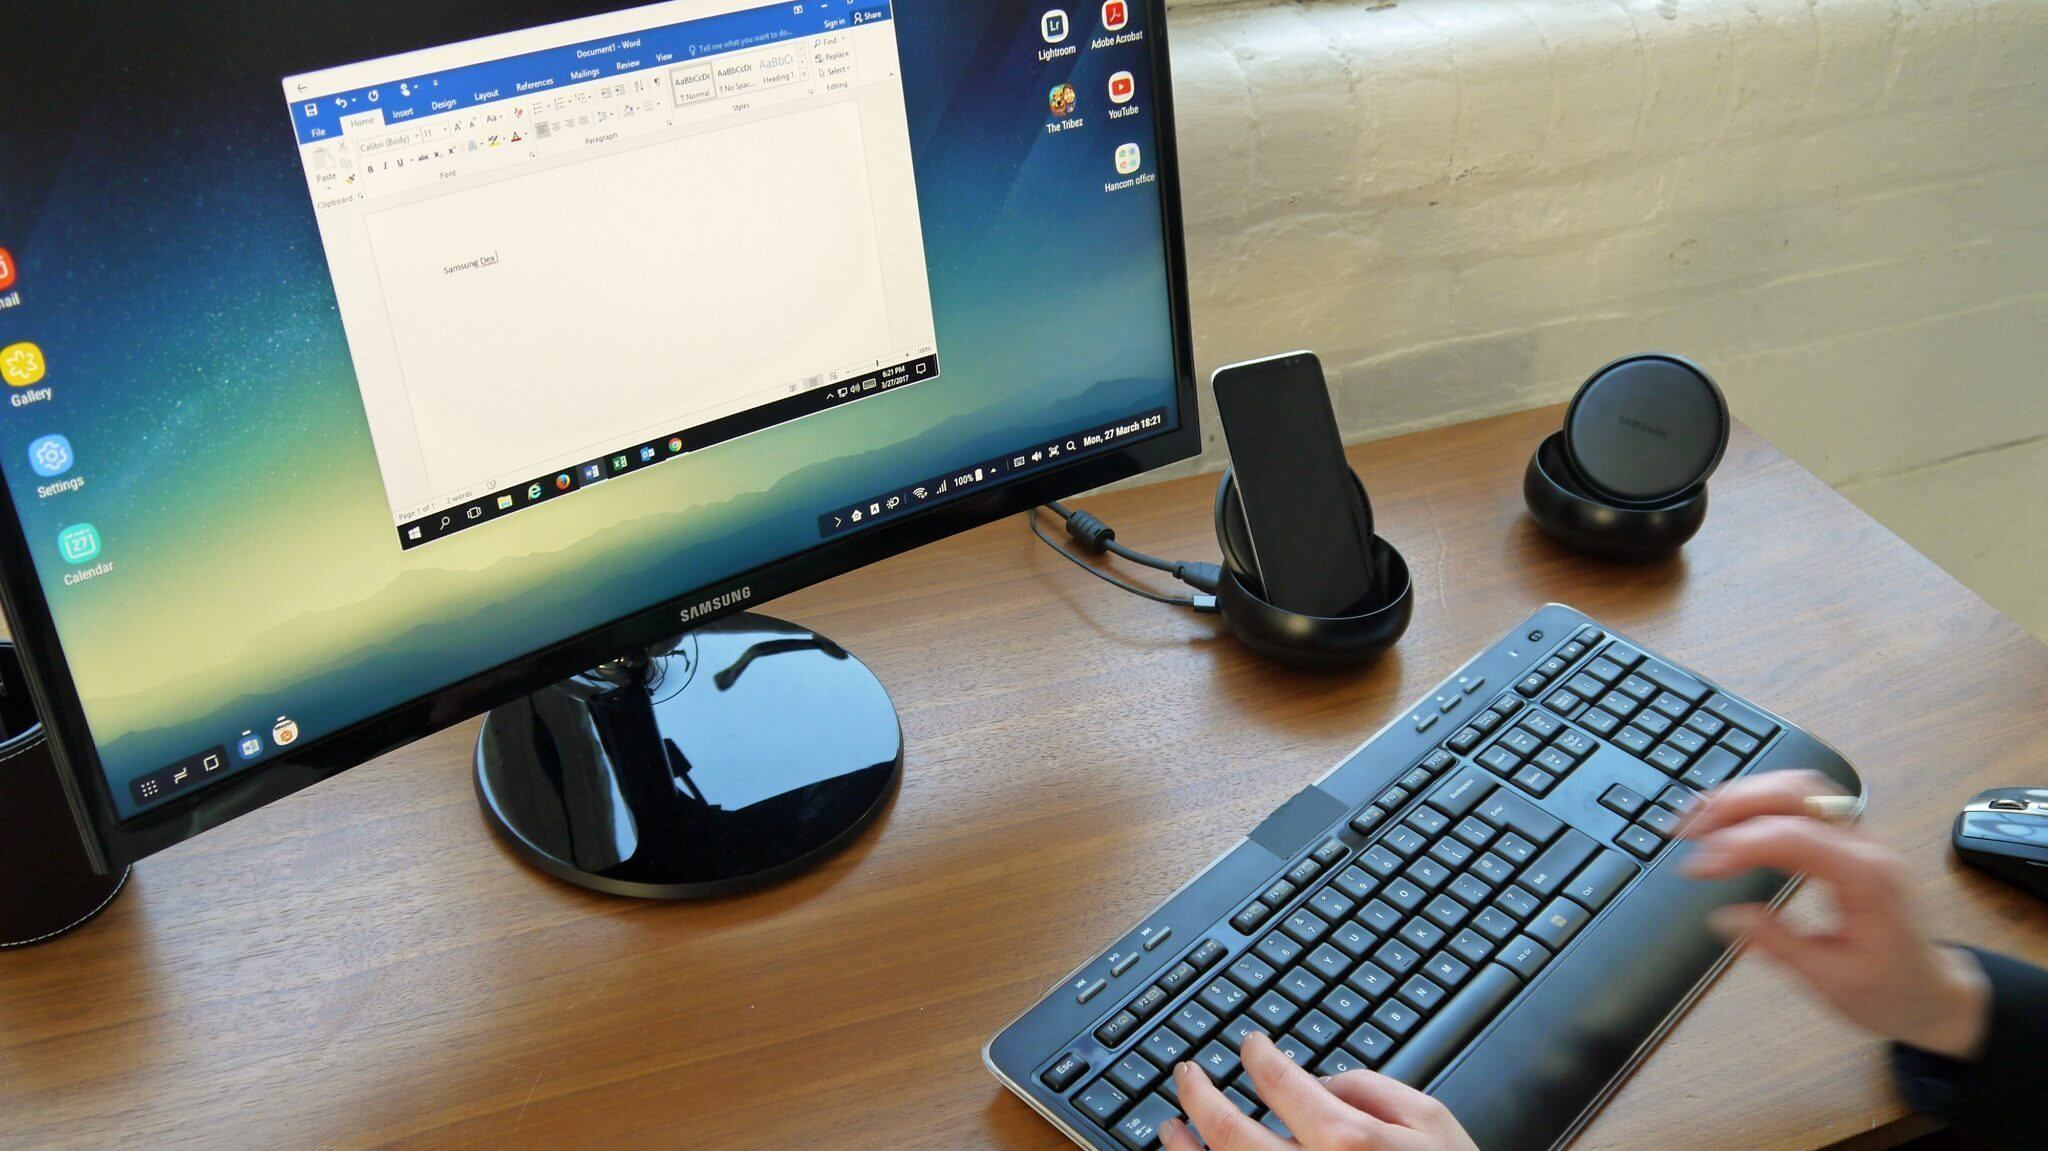 Samsung Dex desktop Galaxy S8 dock base - REVIEW: Galaxy S8 e S8+ representam elegância e sofisticação